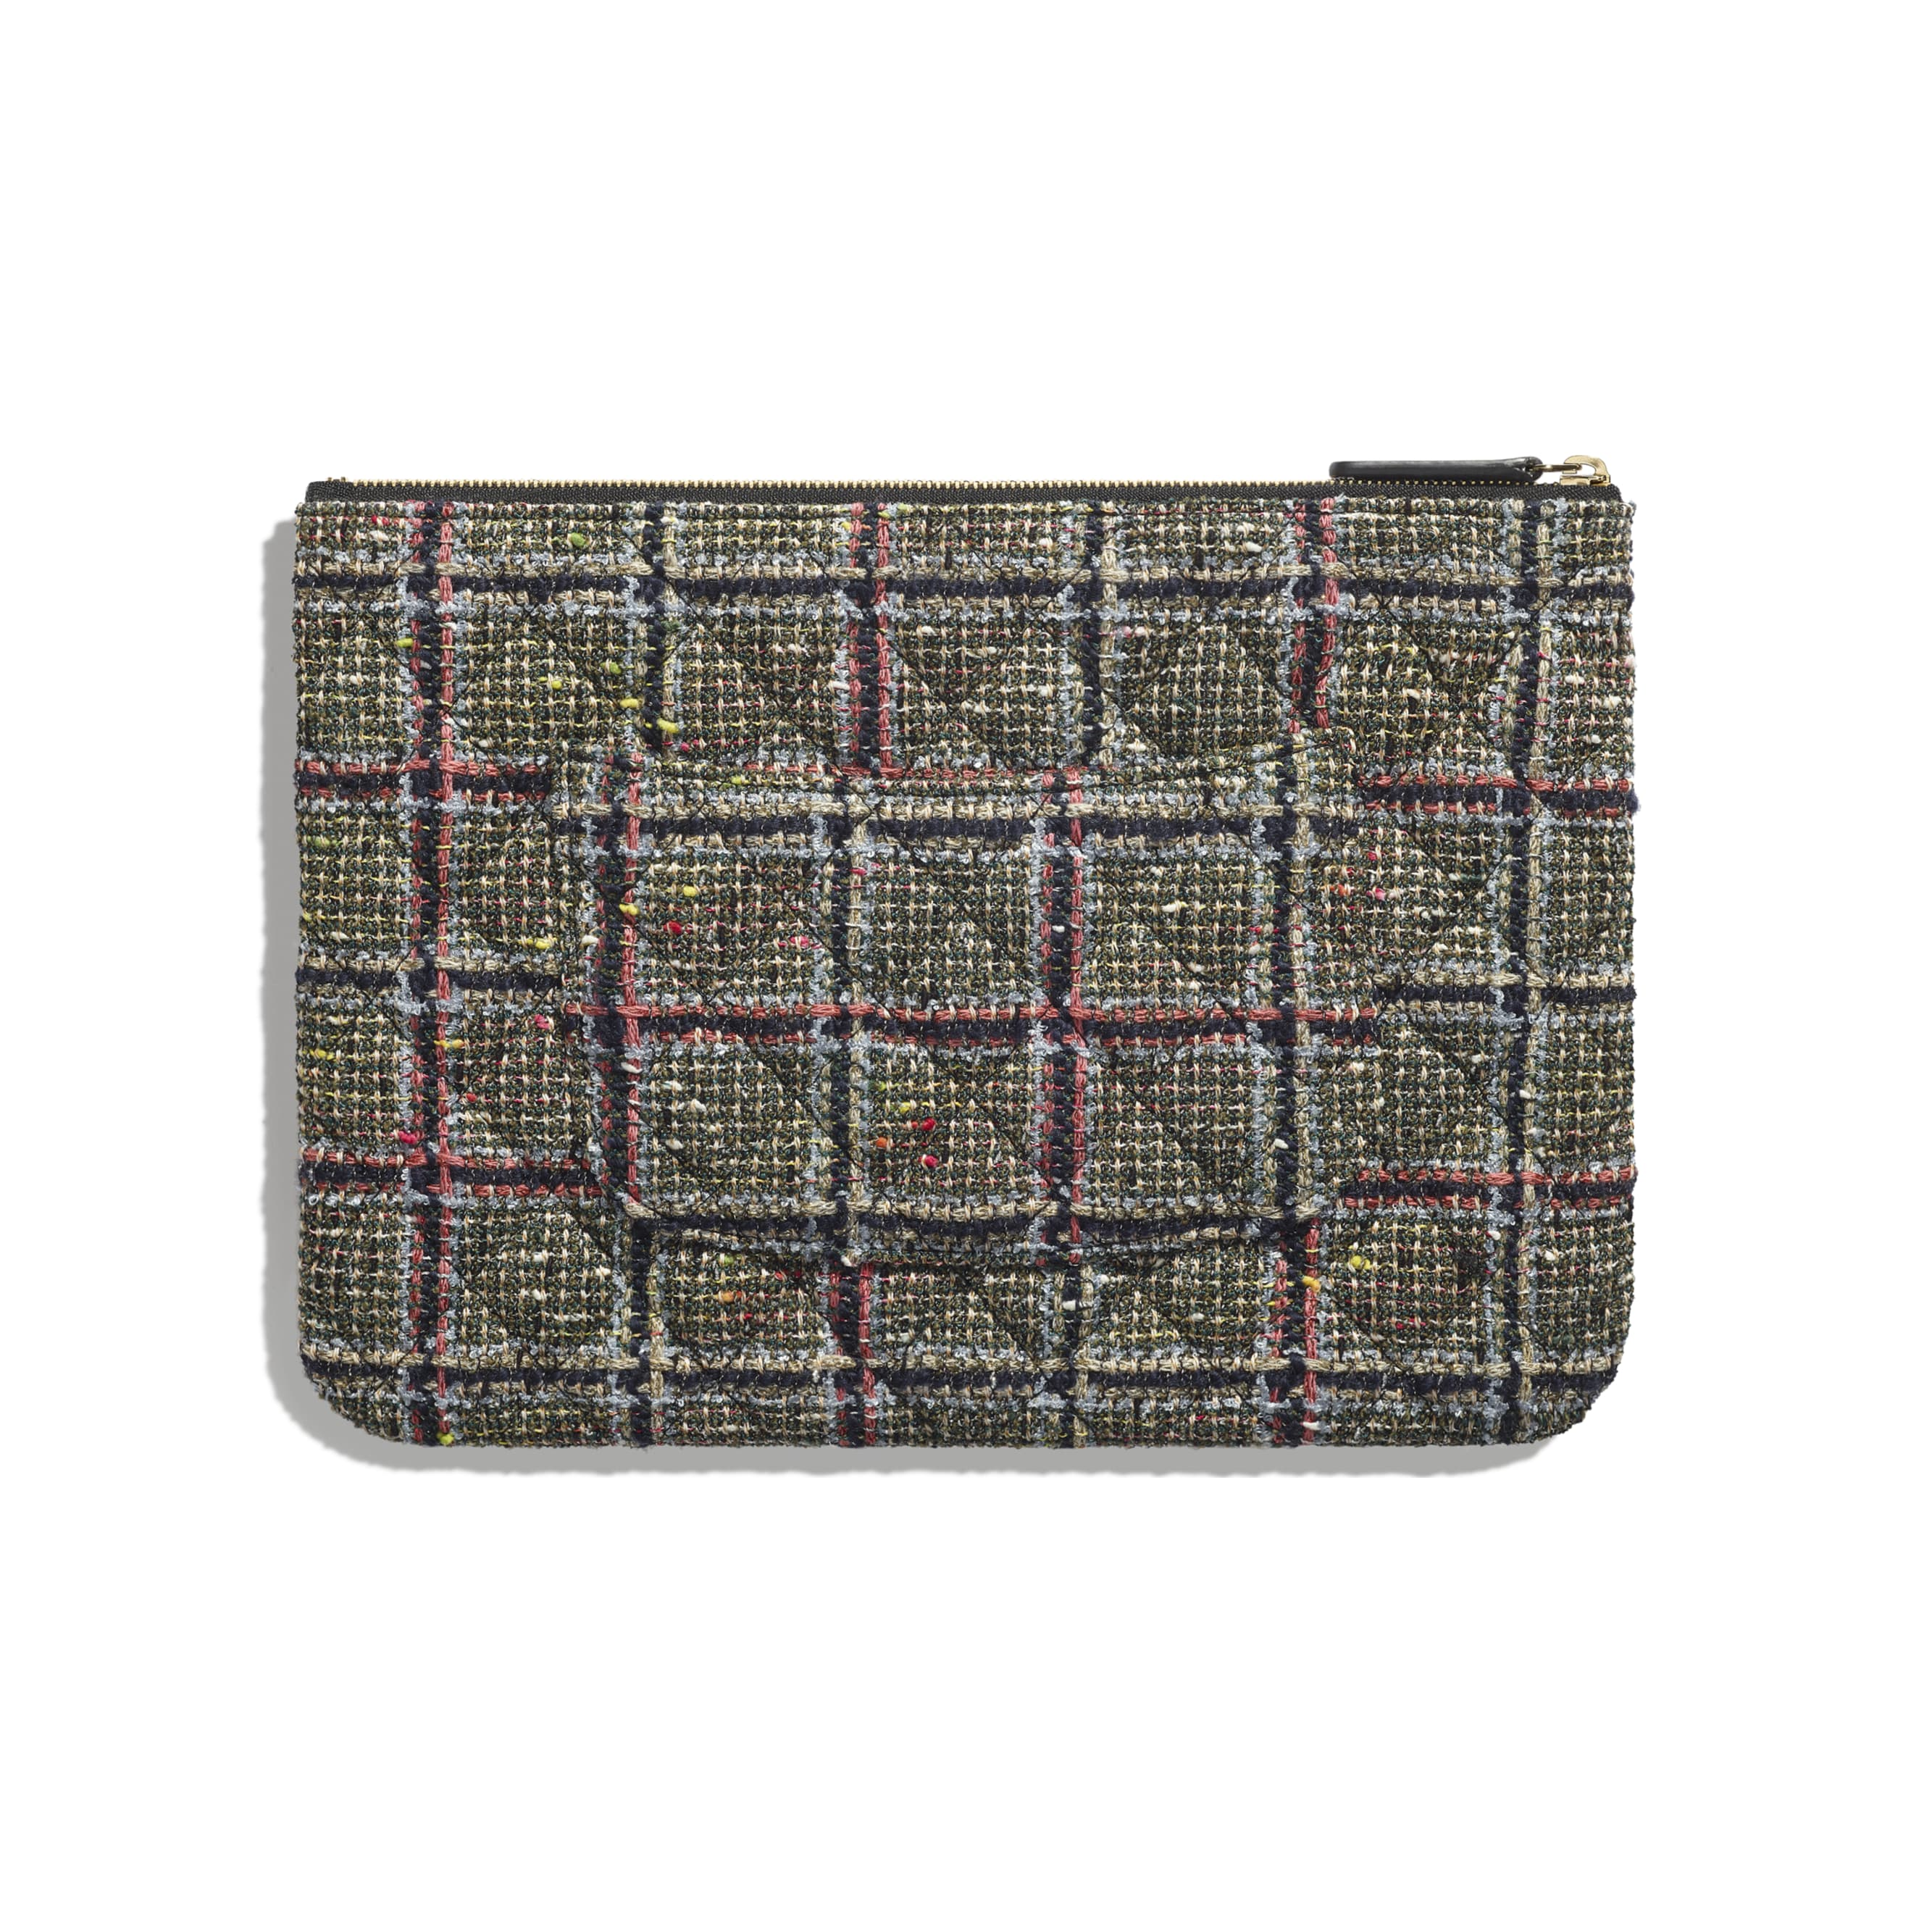 Pouch - Black, Khaki, Gray & Red - Tweed, Lambskin & Gold-Tone Metal - CHANEL - Alternative view - see standard sized version